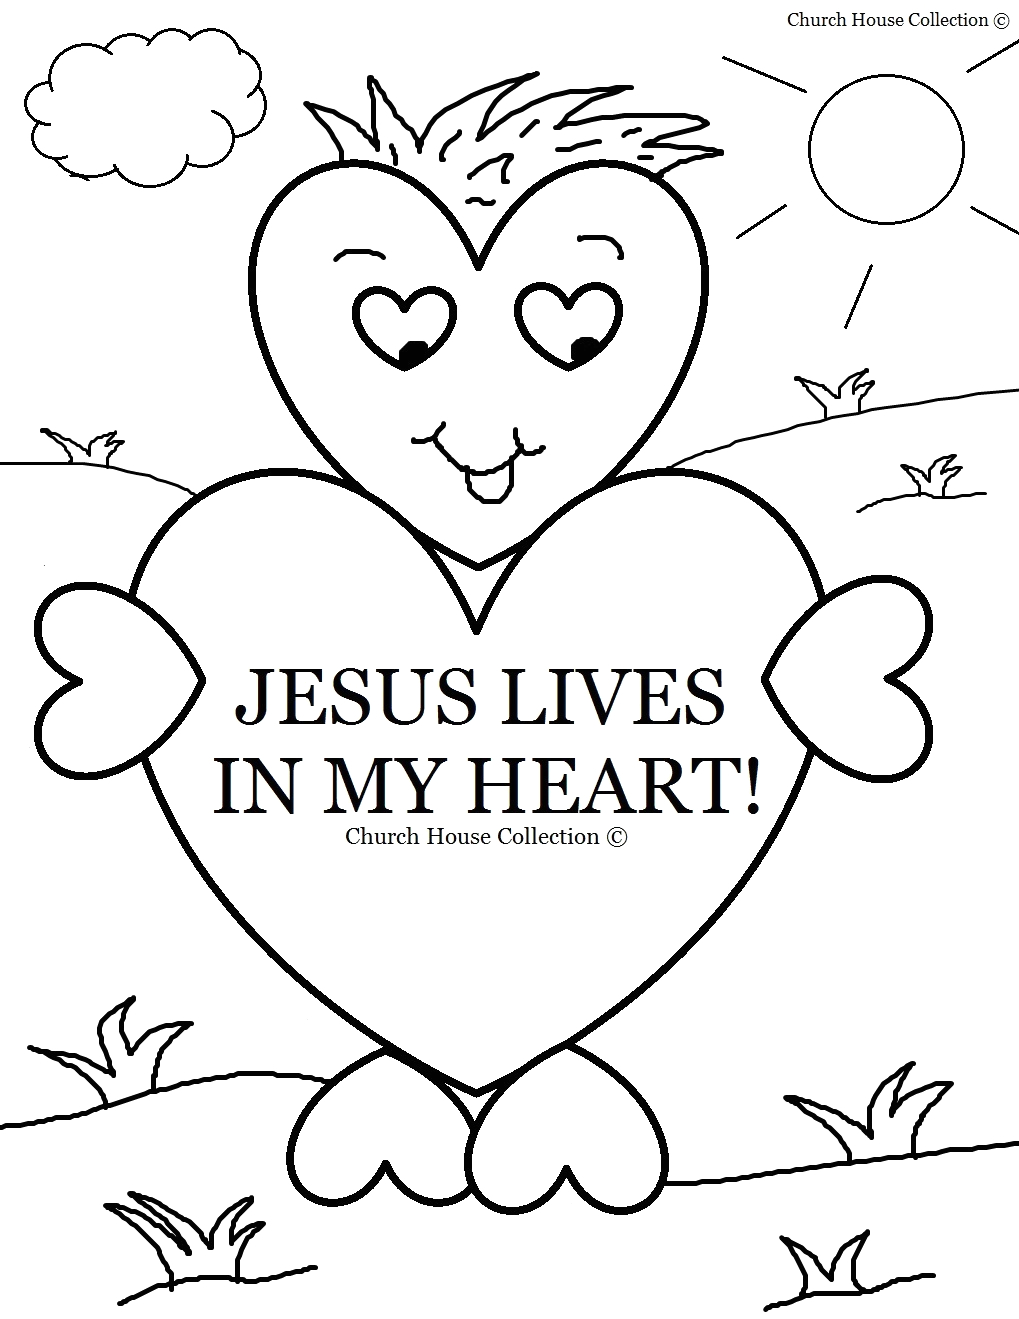 Free Valentine Coloring Pages for Sunday School Church House Collection Blog Jesus Lives In My Heart